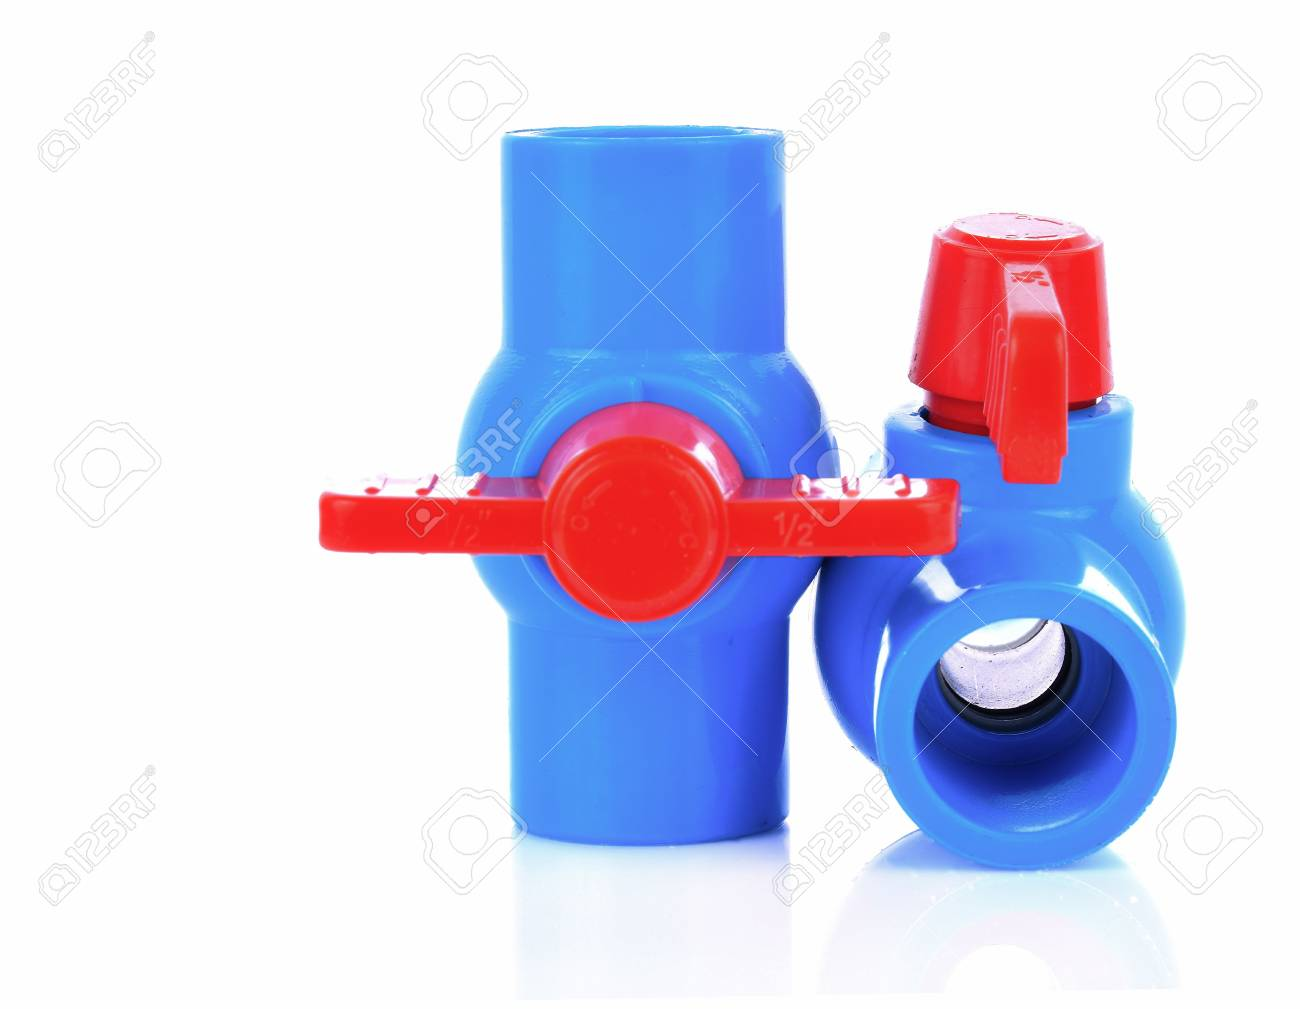 Plastic water pipe on white background Stock Photo - 79196392  sc 1 st  123RF.com & Plastic Water Pipe On White Background Stock Photo Picture And ...